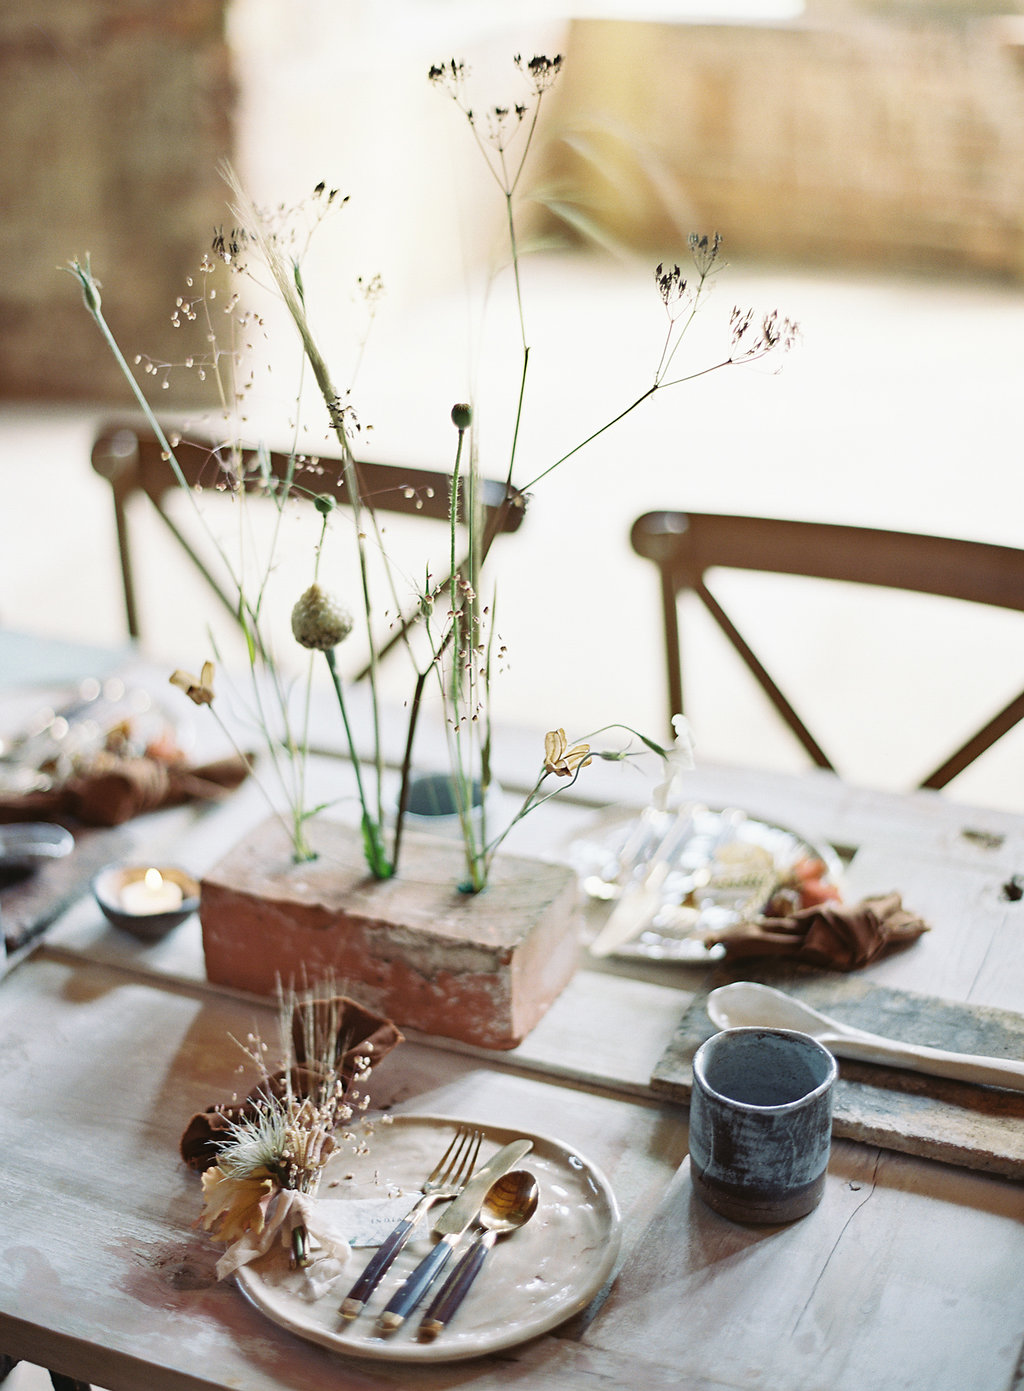 Litha Floral Workshop and Buttonhole Tutorial on cottagehill.co17.jpg